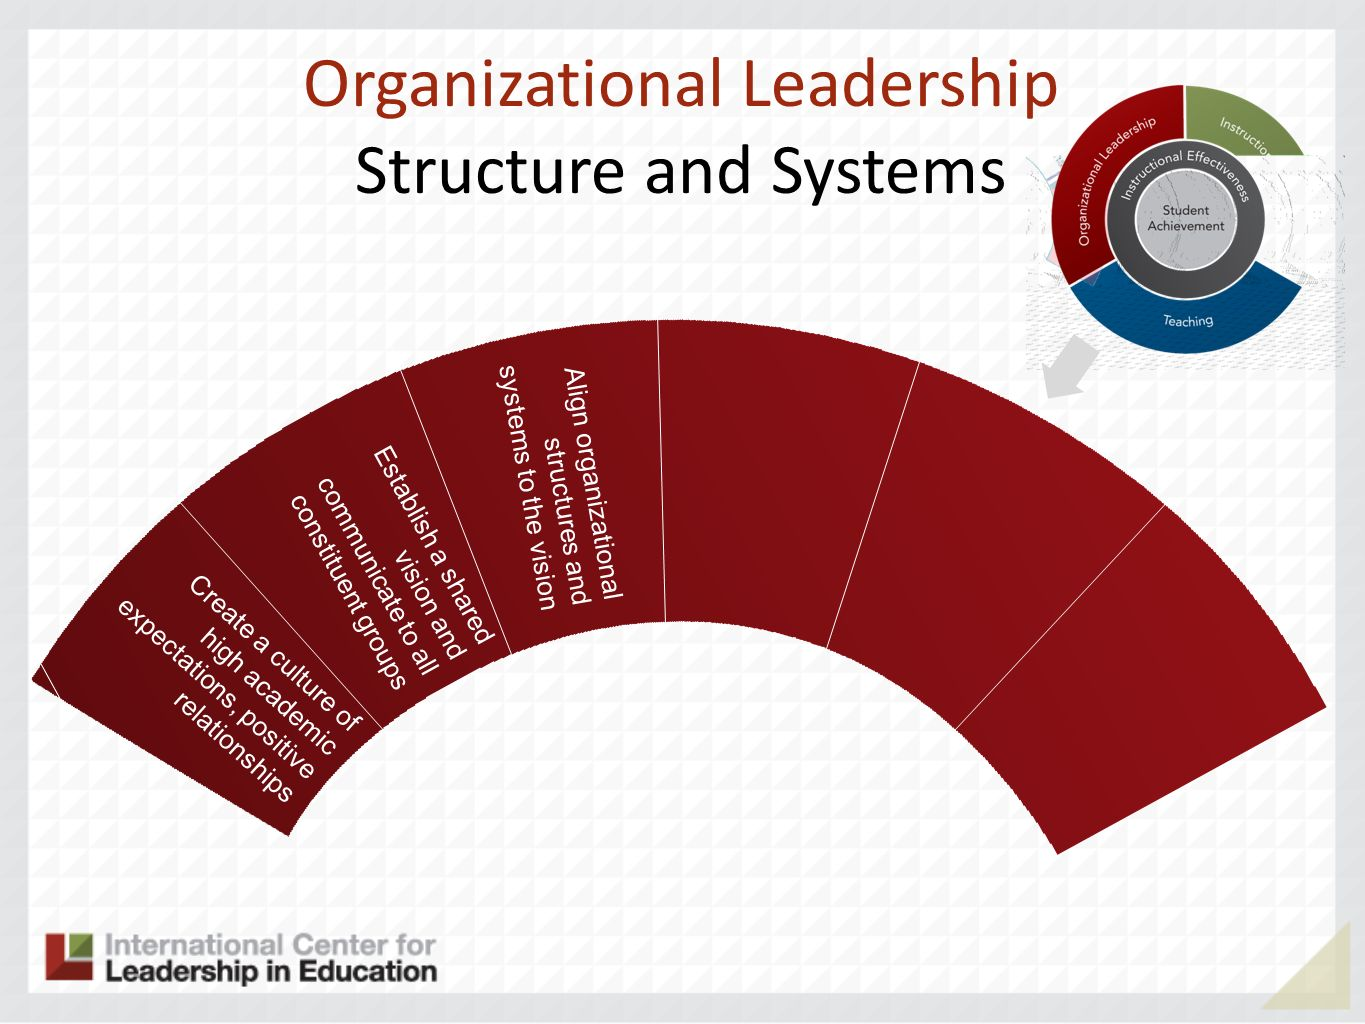 Organizational Leadership Structure and Systems Align organizational structures and systems to the vision Create a culture of high academic expectations, positive relationships Establish a shared vision and communicate to all constituent groups